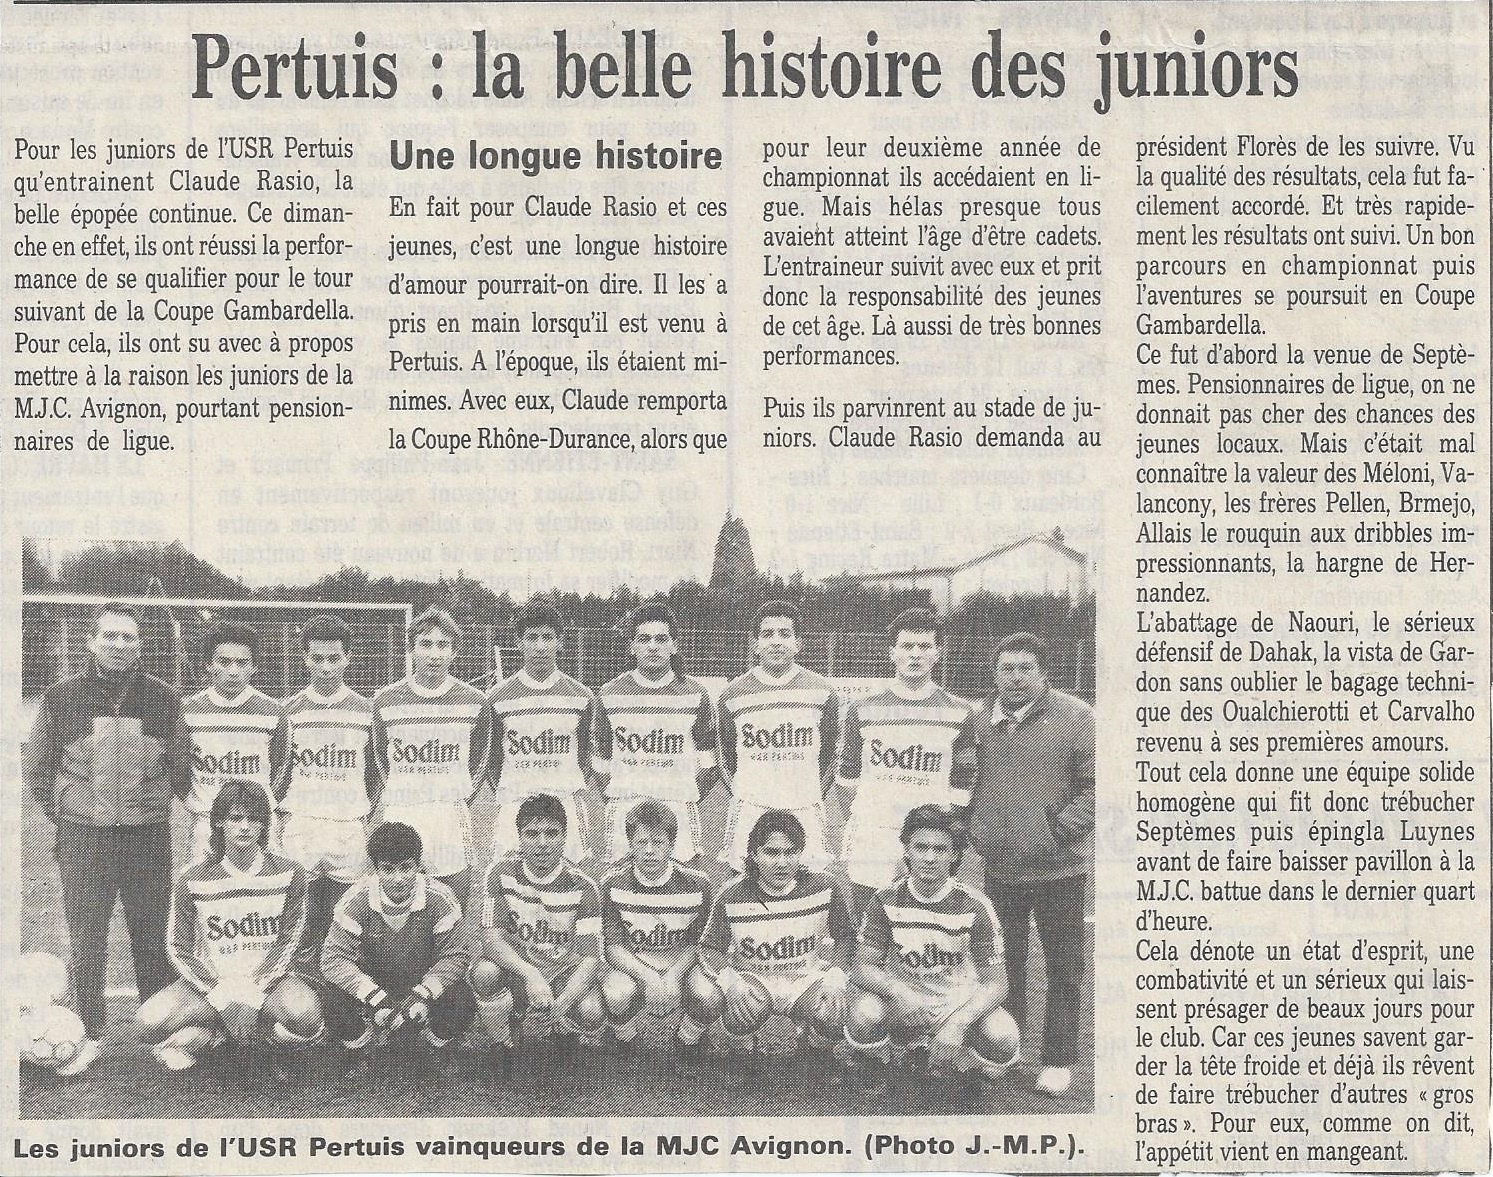 belle hisoire des juniors